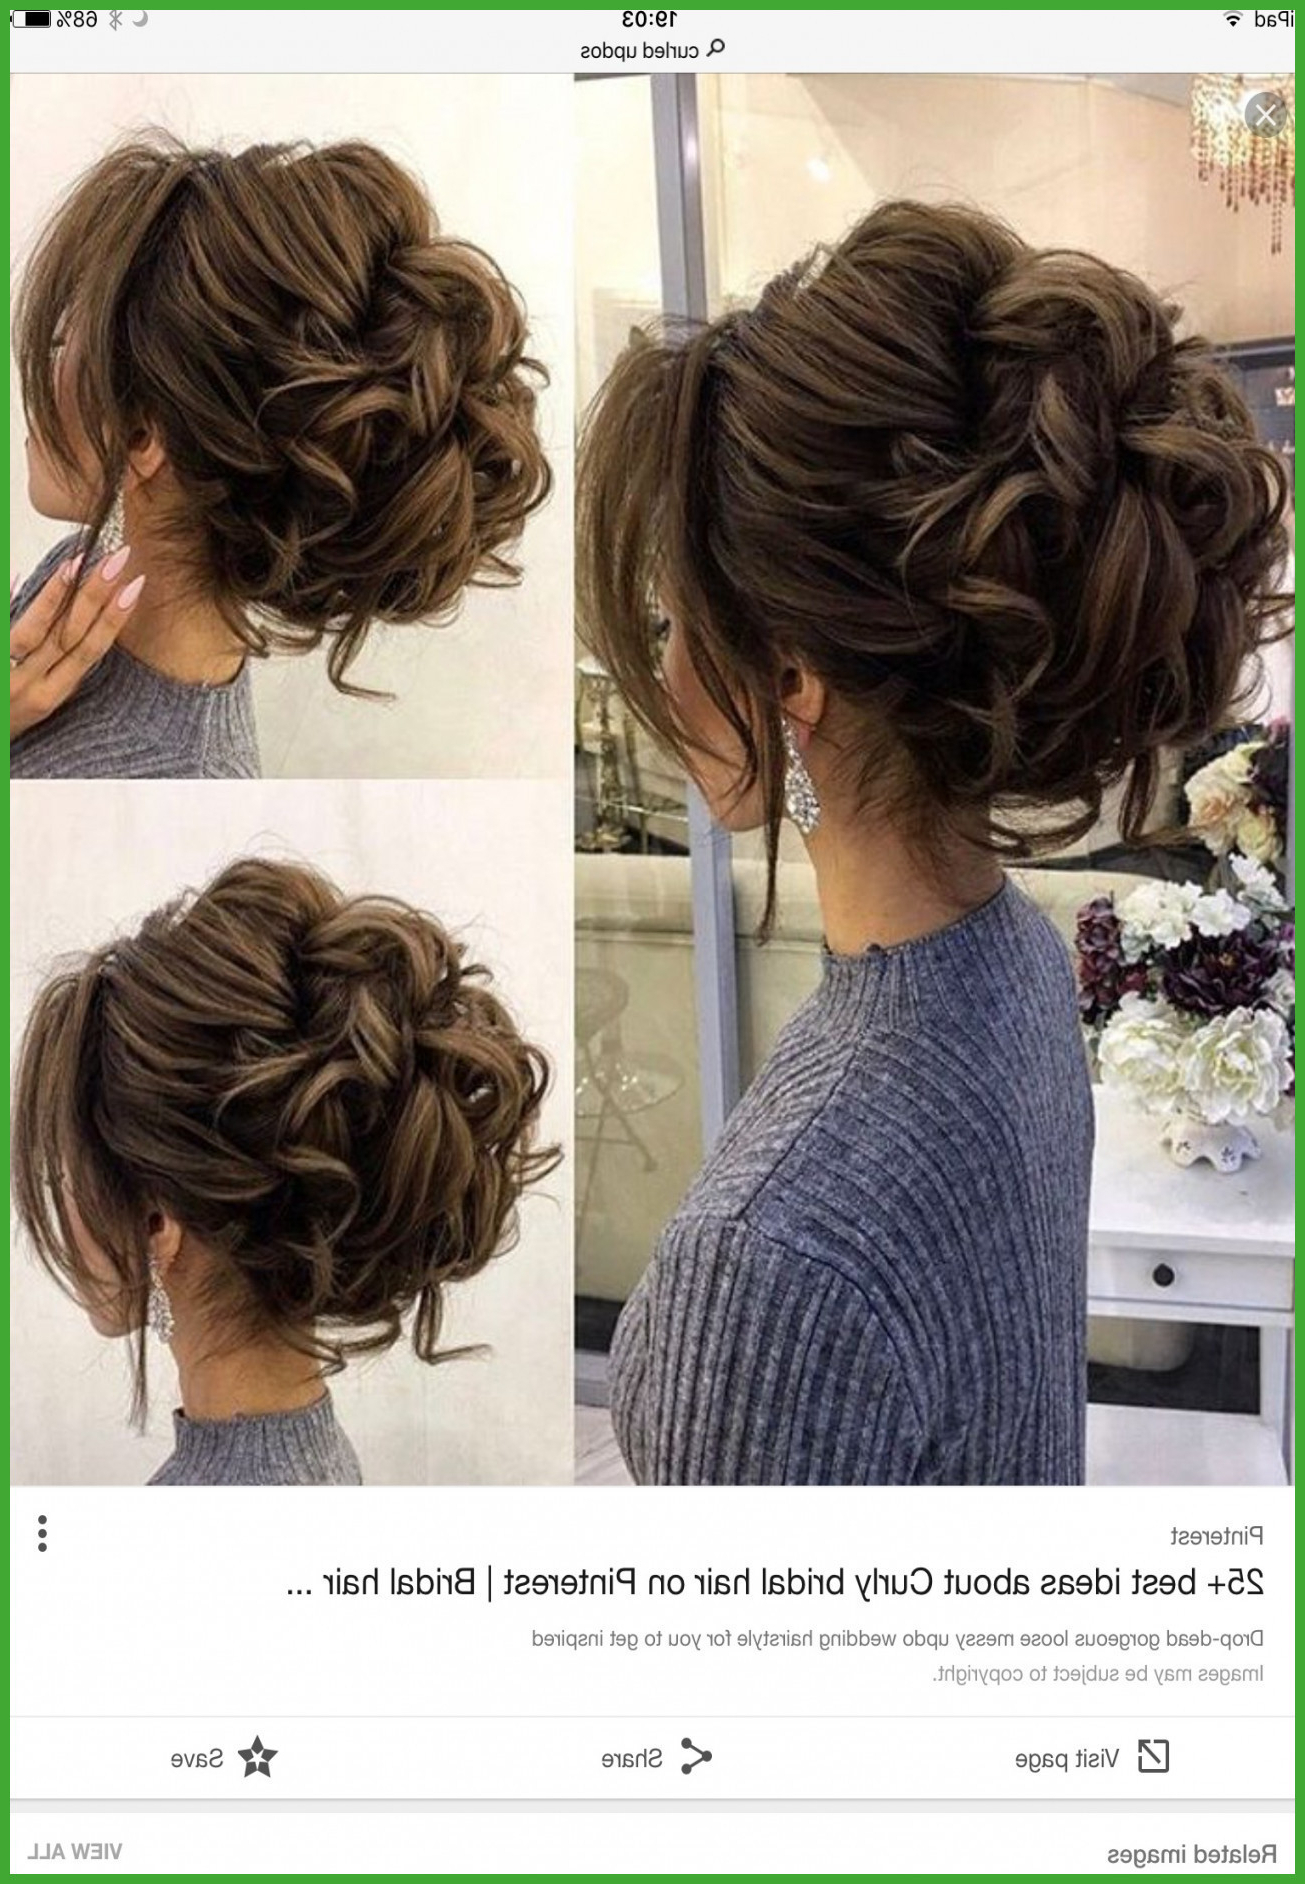 96 Updo Hairstyles For Shoulder Length Curly Hair With Most Recently Released Curled Updo Hairstyles (View 7 of 20)